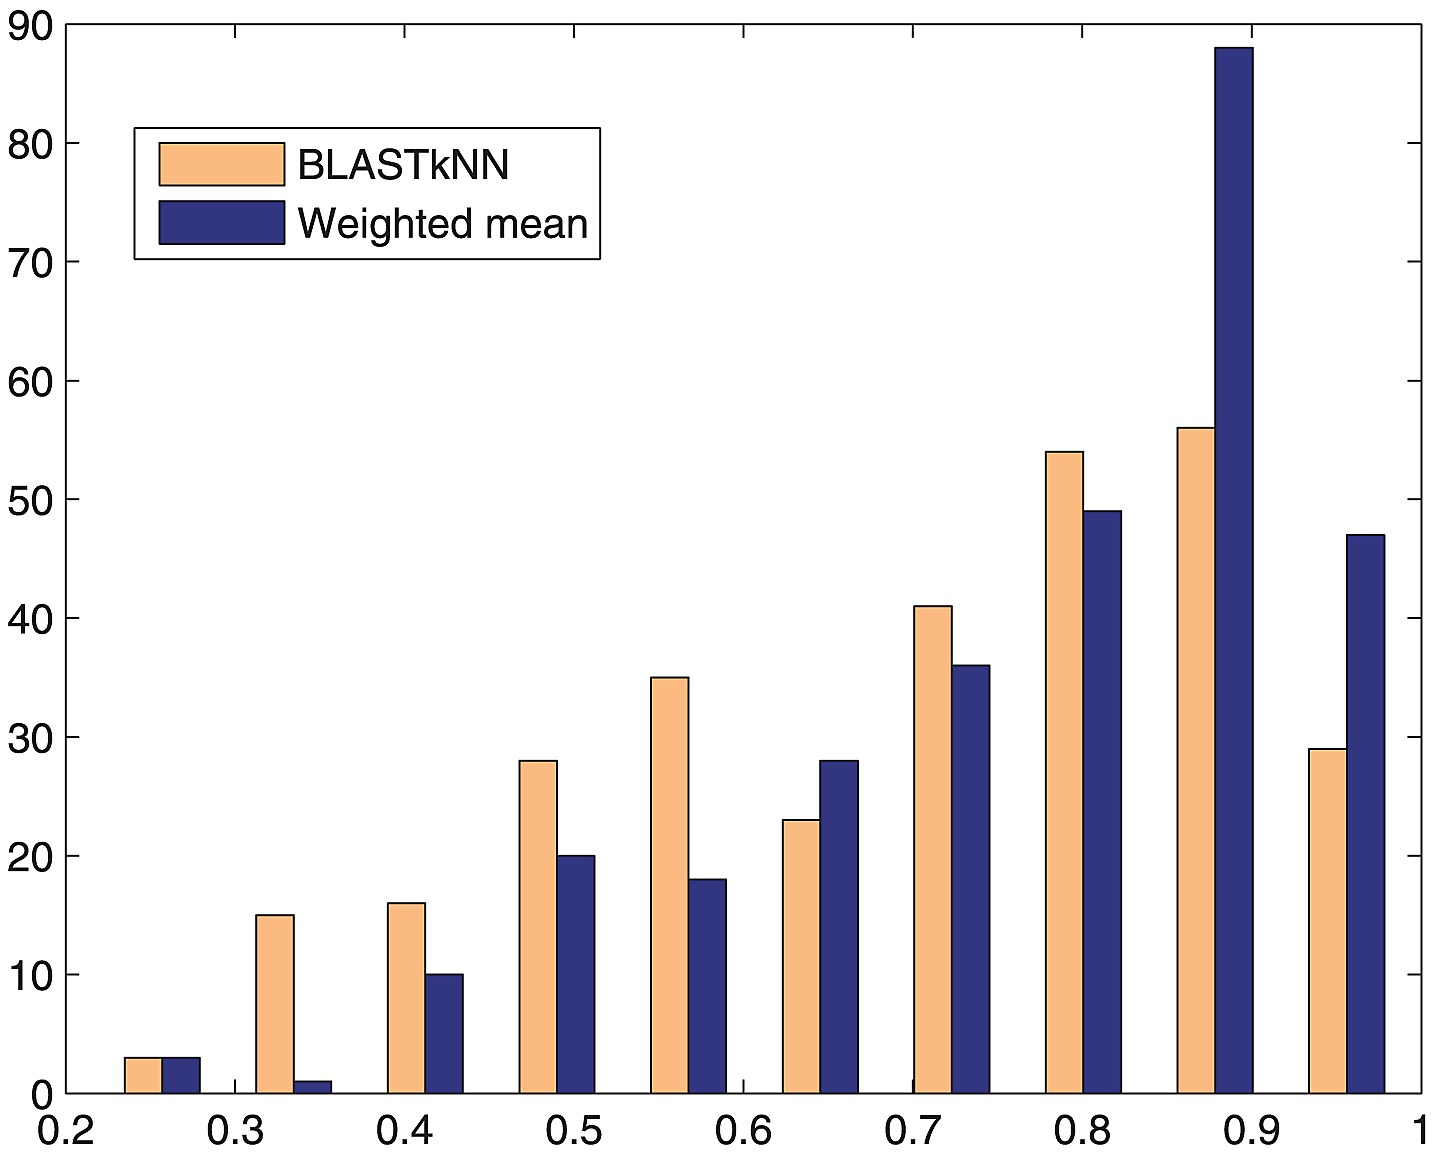 Histogram of scores of BLAST-NN and Weighted Mean methods